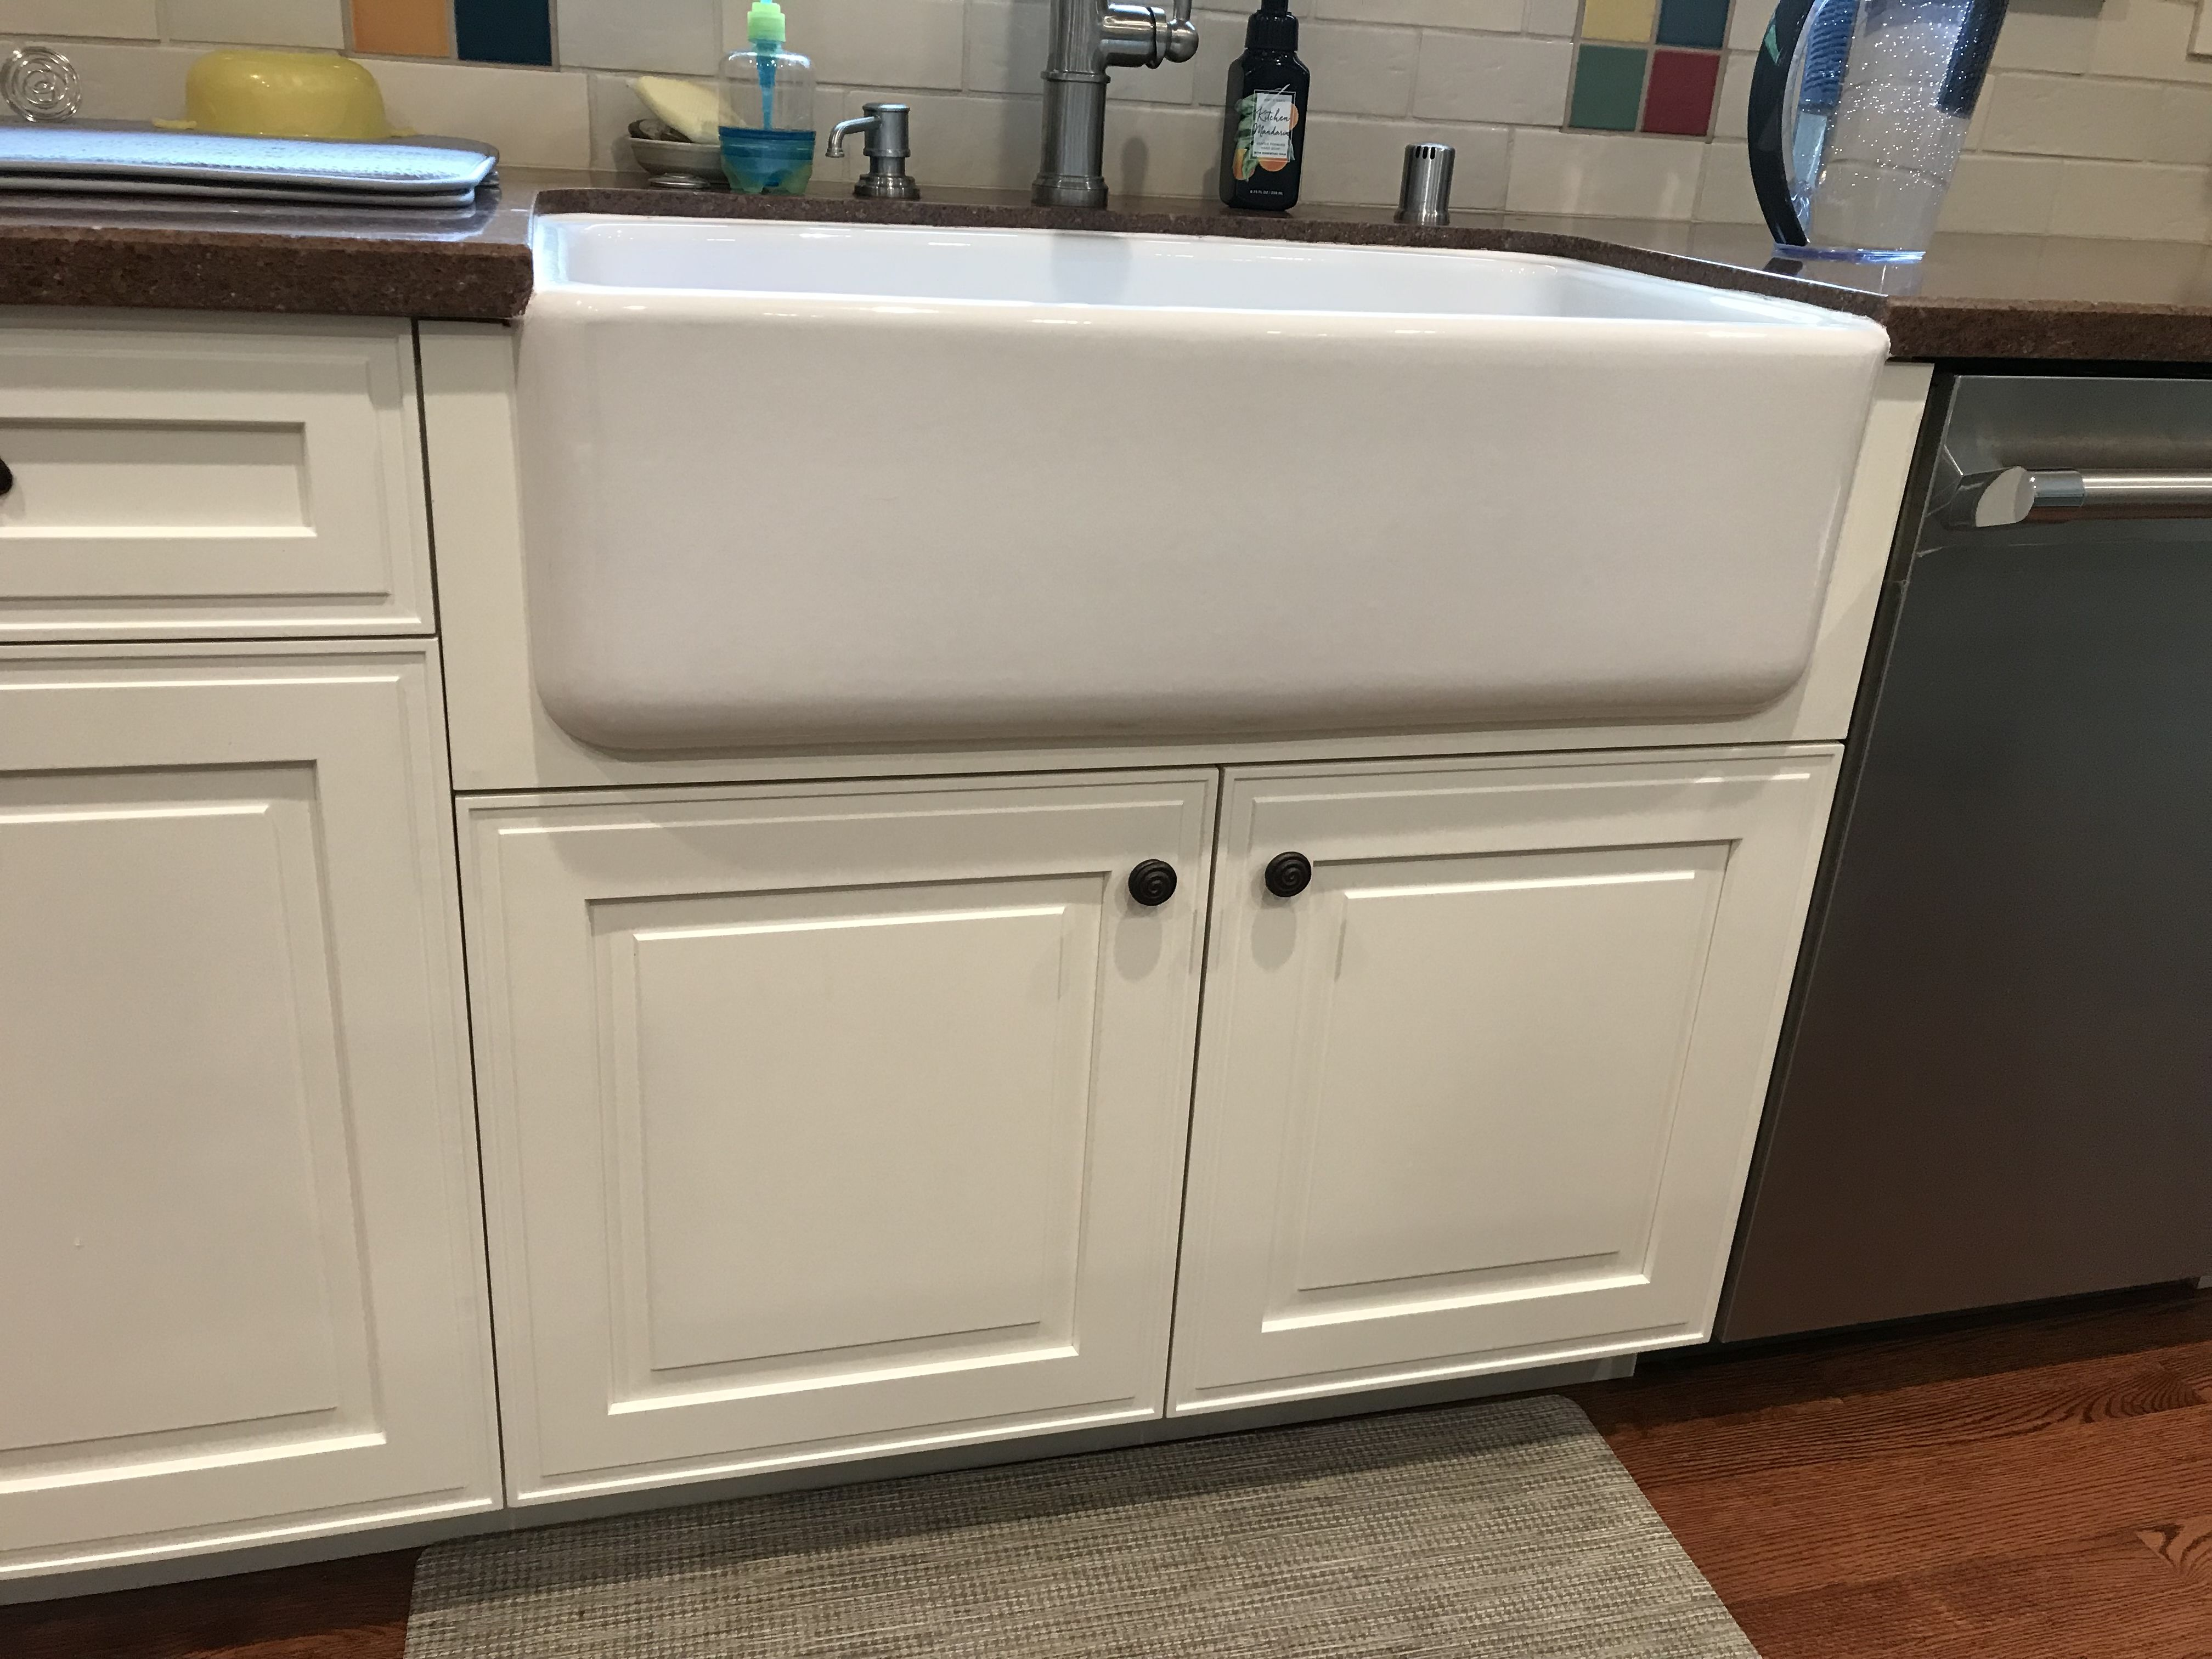 All My Jobs That Have Ranch Style Sinks Must Look This Good In 2020 Ranch Style Sink Ranch